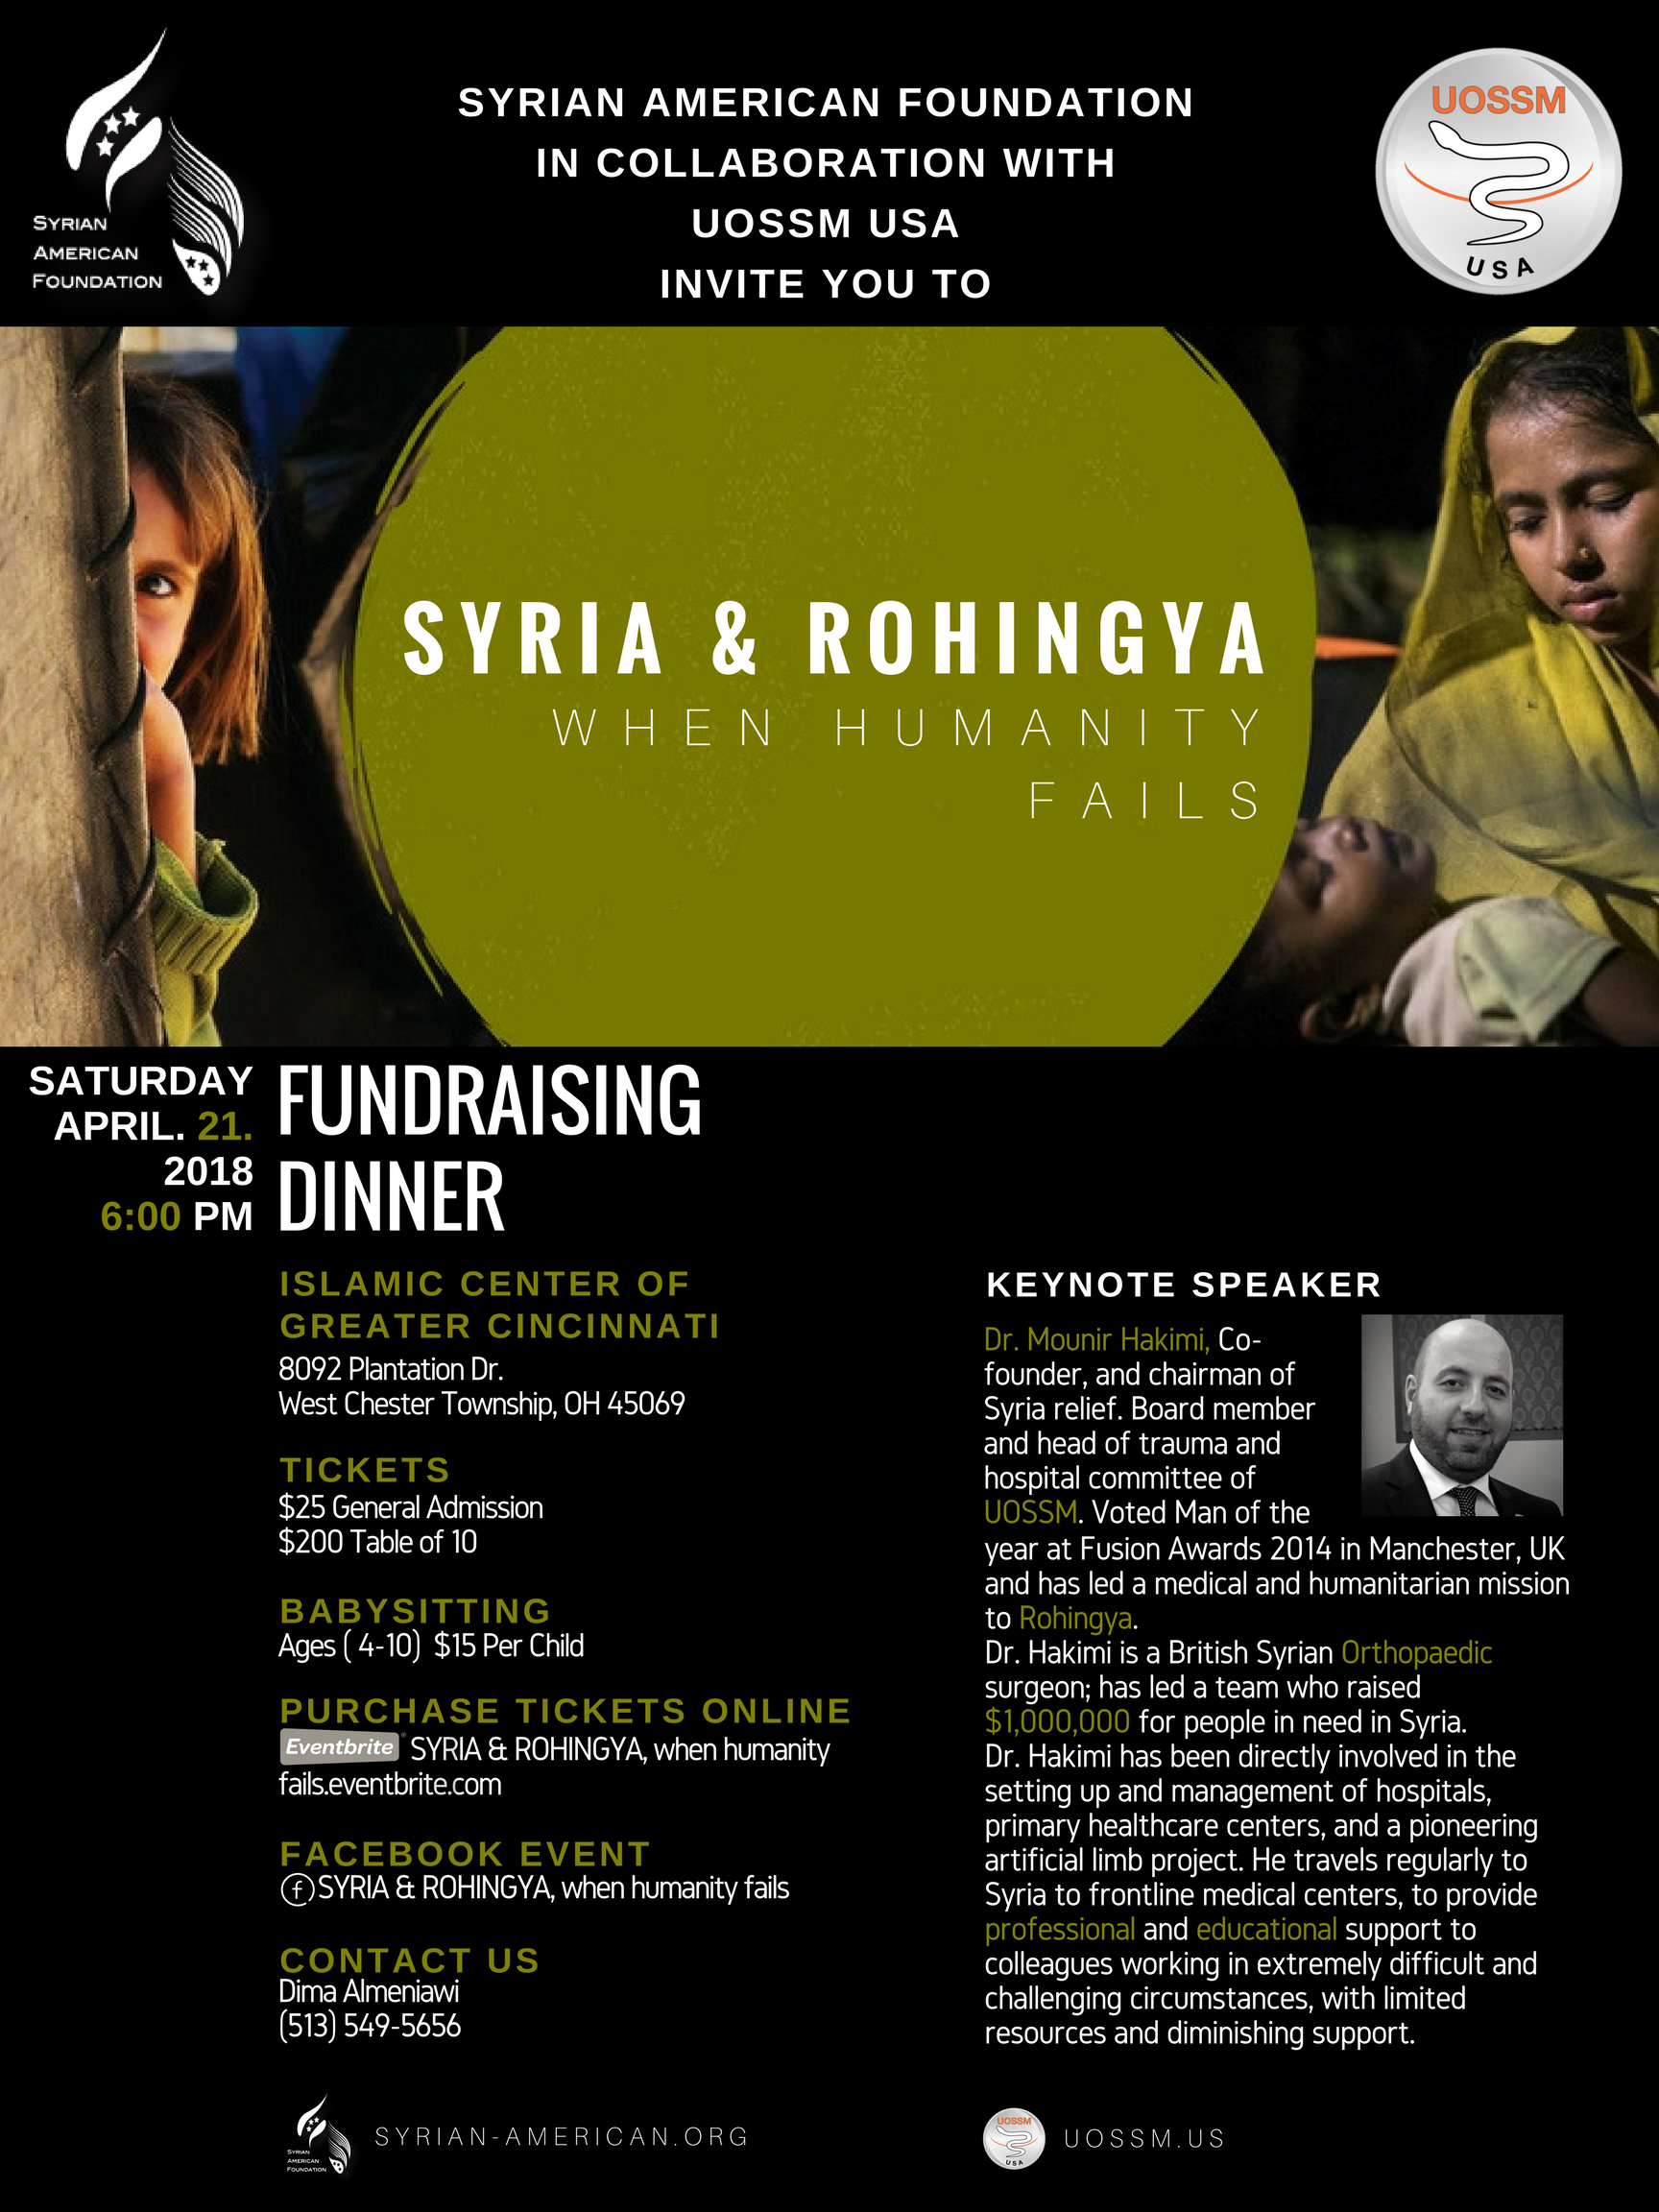 Syrian & Rohingya, when humanity fails